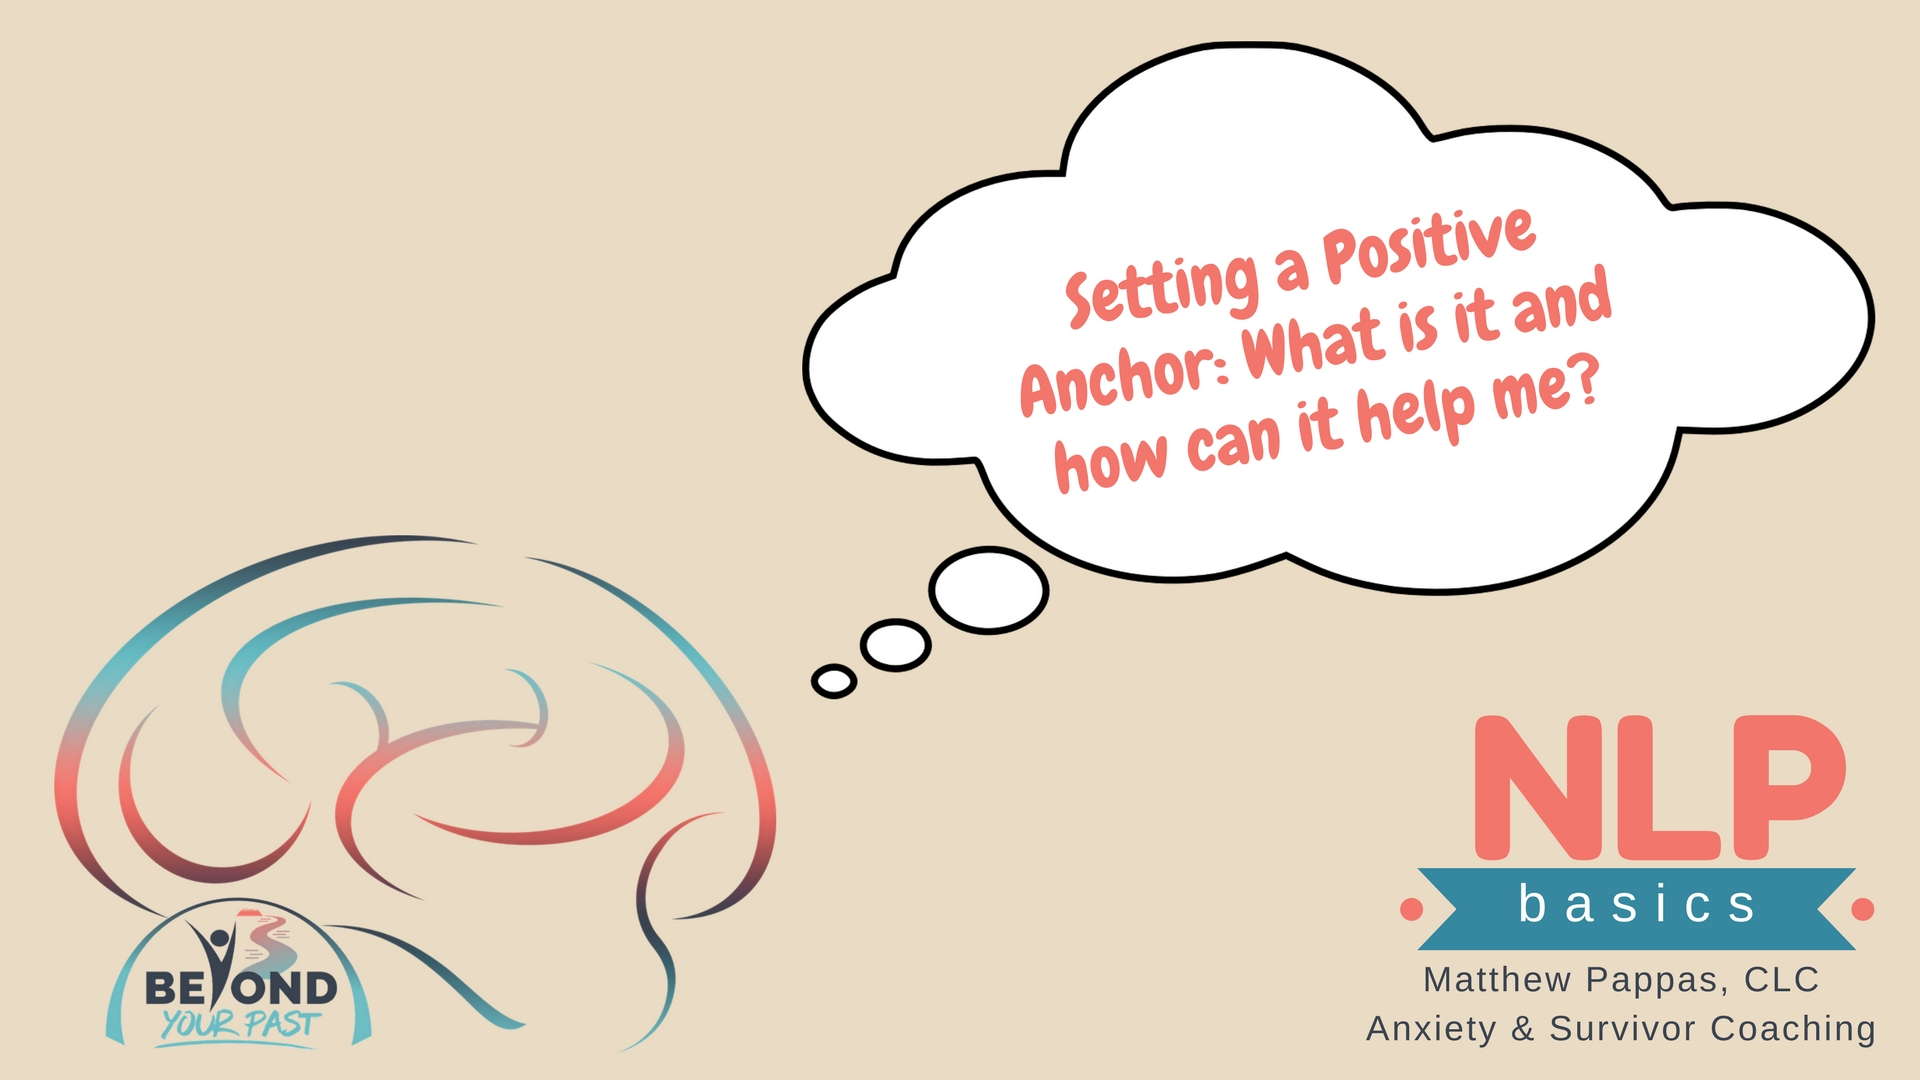 NLP Basics: Setting a Positive Anchor